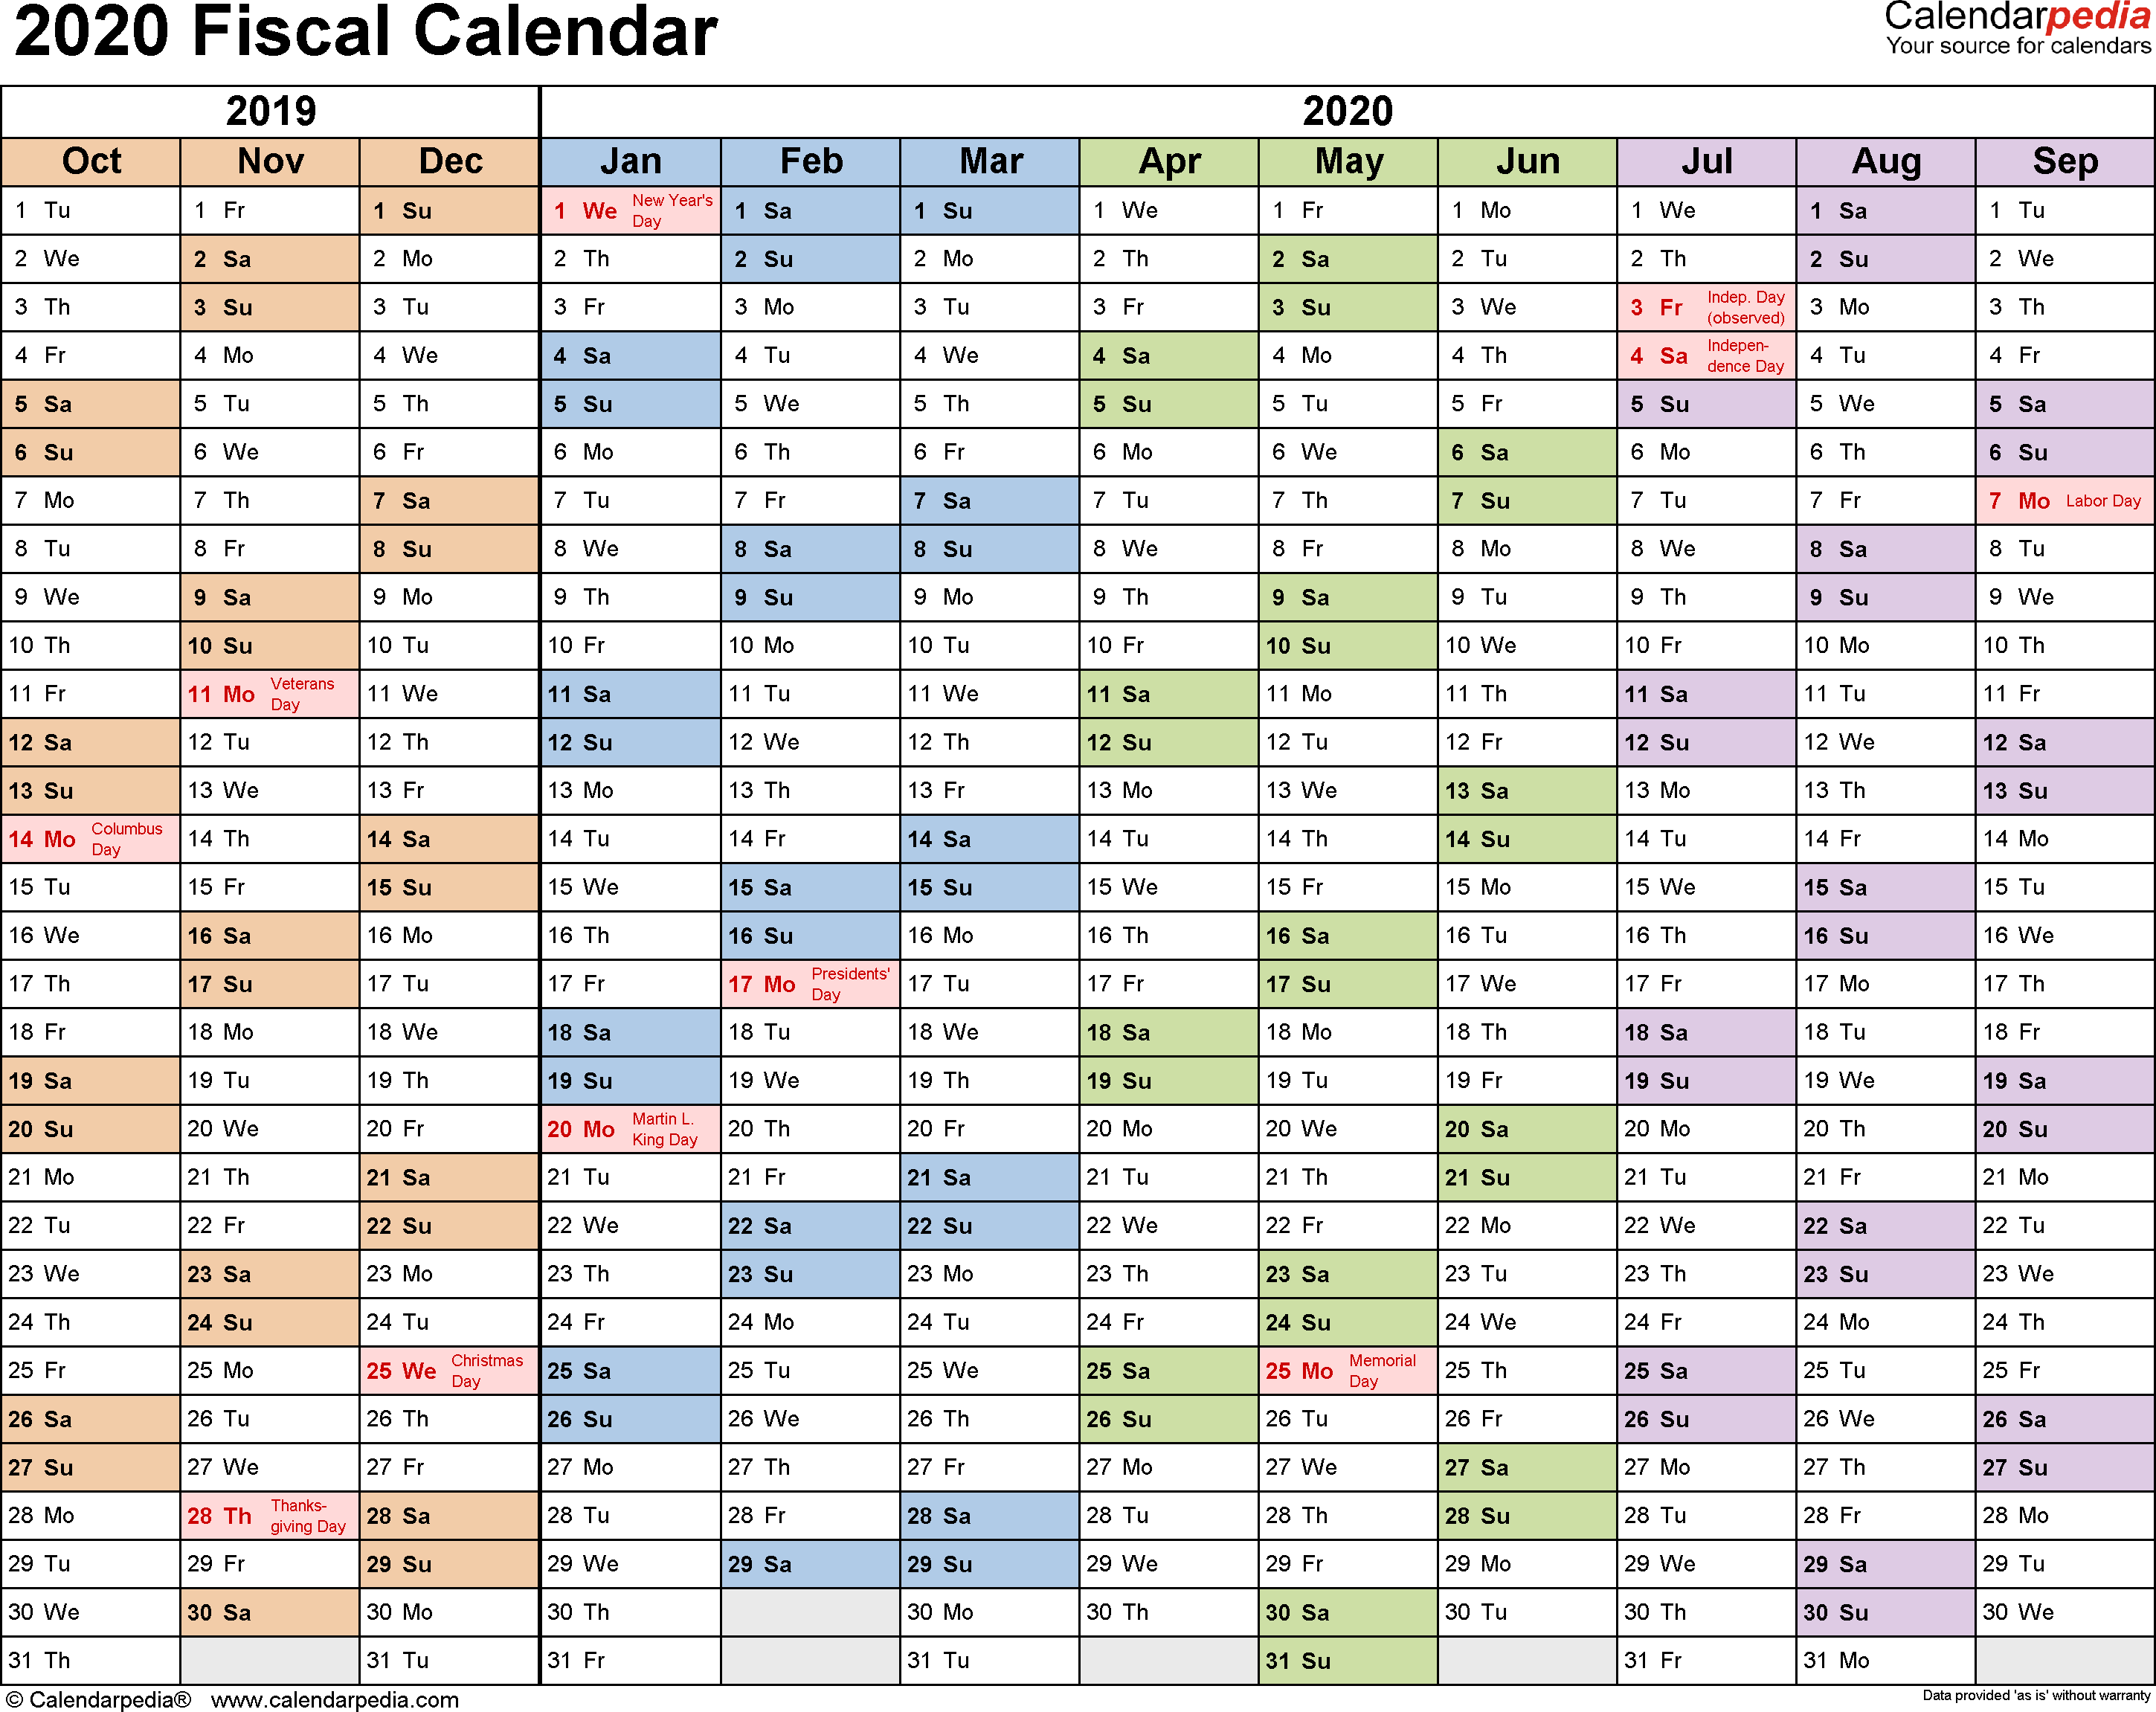 Fiscal Calendars 2020 - Free Printable Excel Templates in Pay Period Calendar 2020 Excel